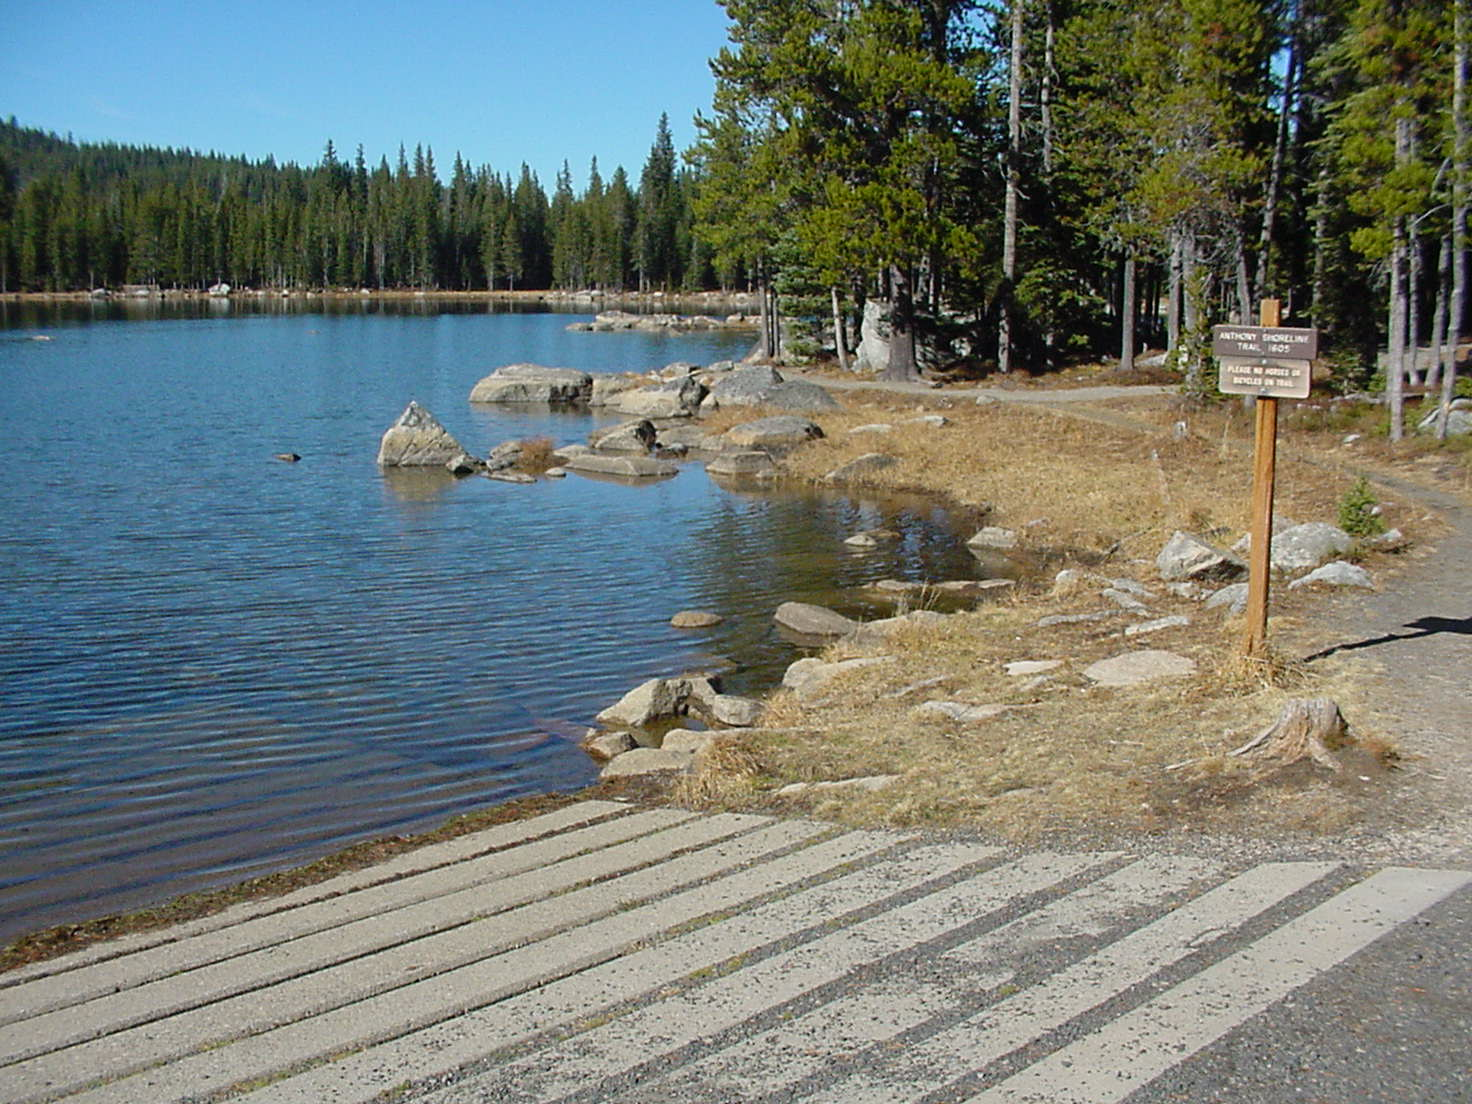 Small concrete boat ramp at Anthony Lake surrounded by pine trees